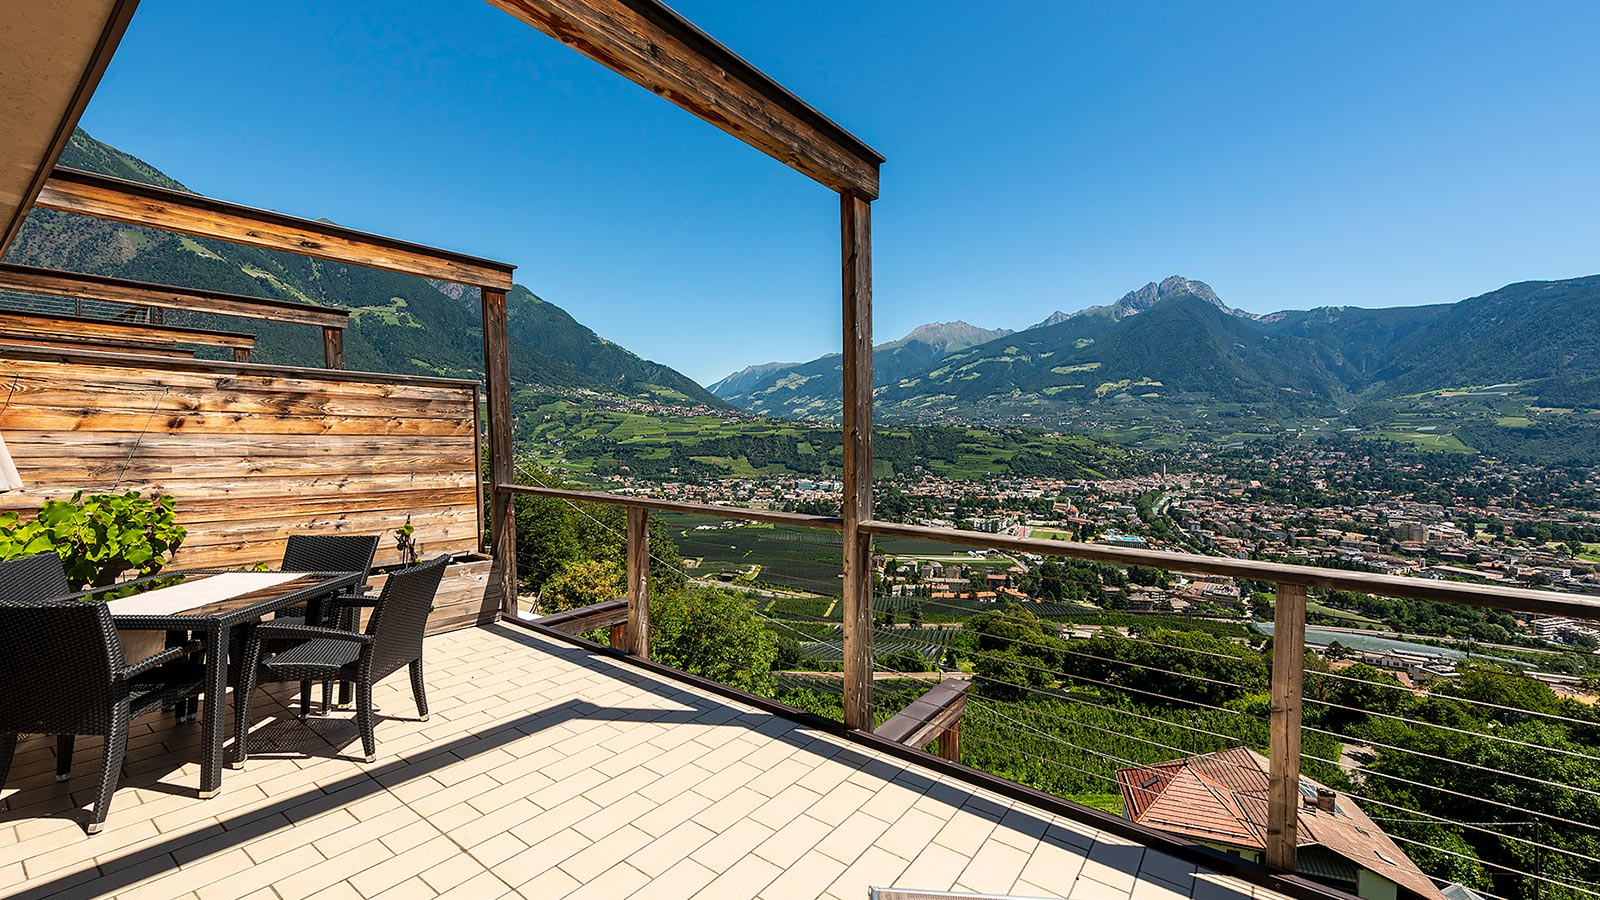 The terrace of Aqualis , your accommodation near Merano